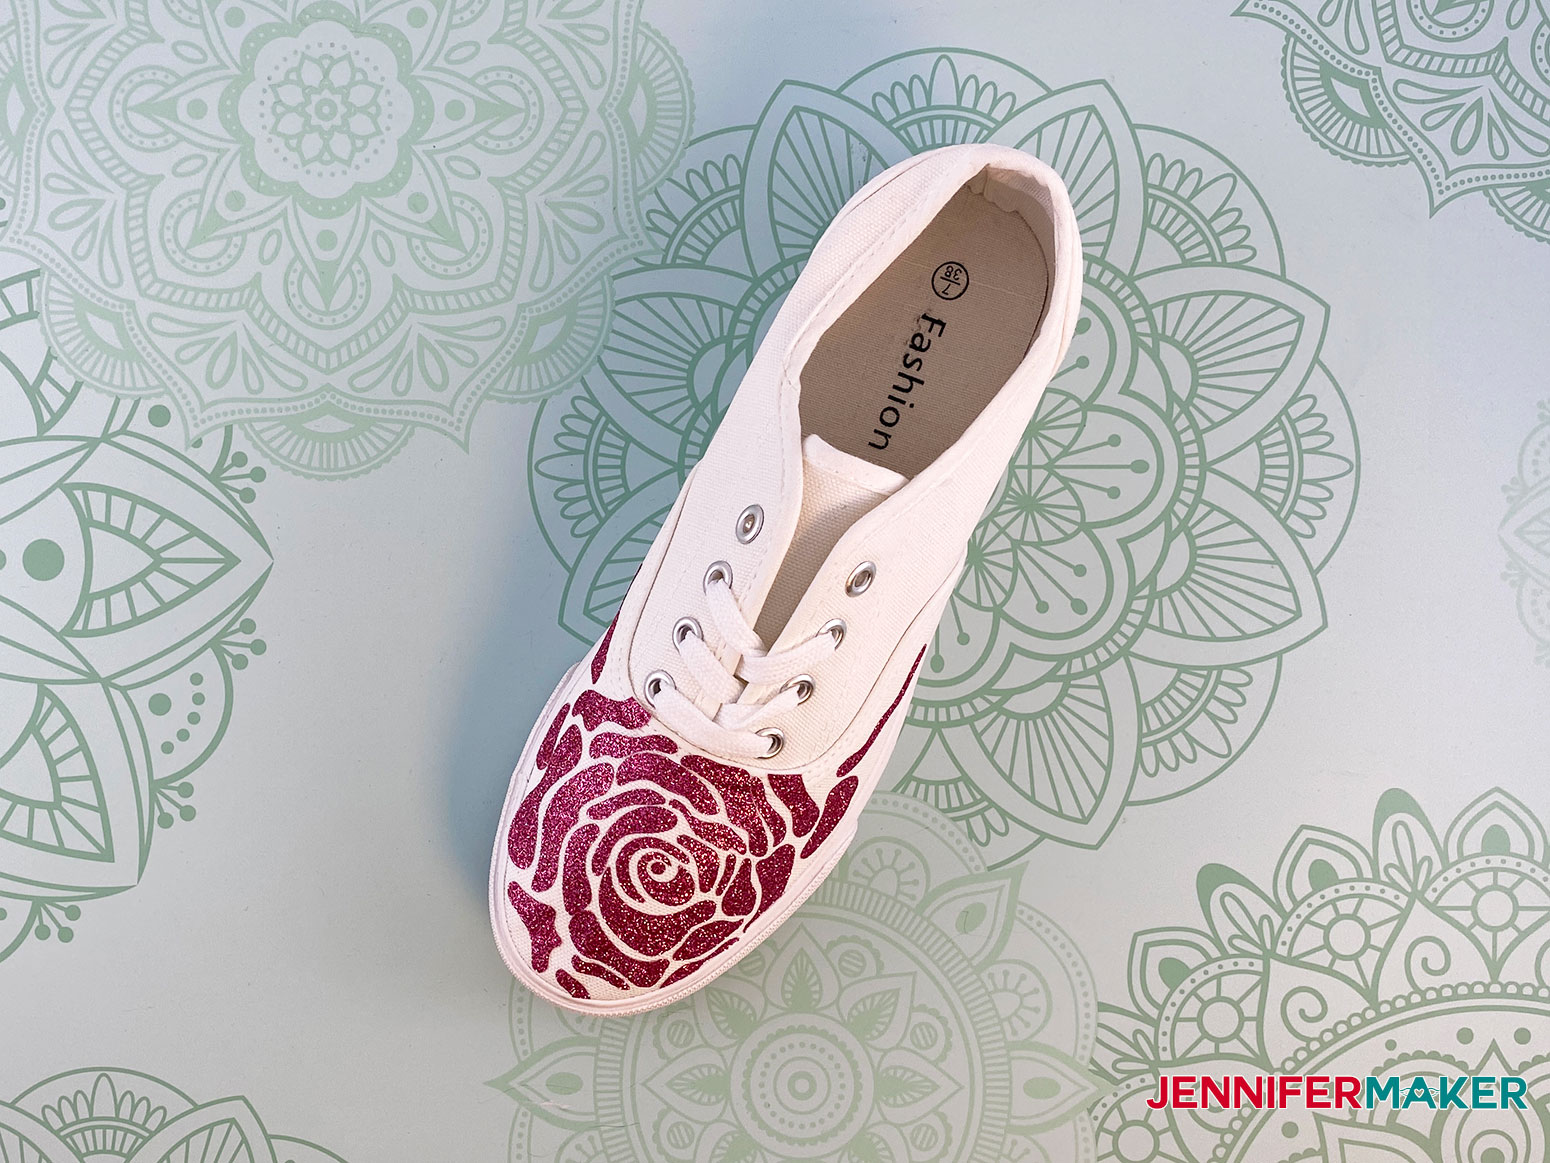 This is my rose design for my upcycled sneakers